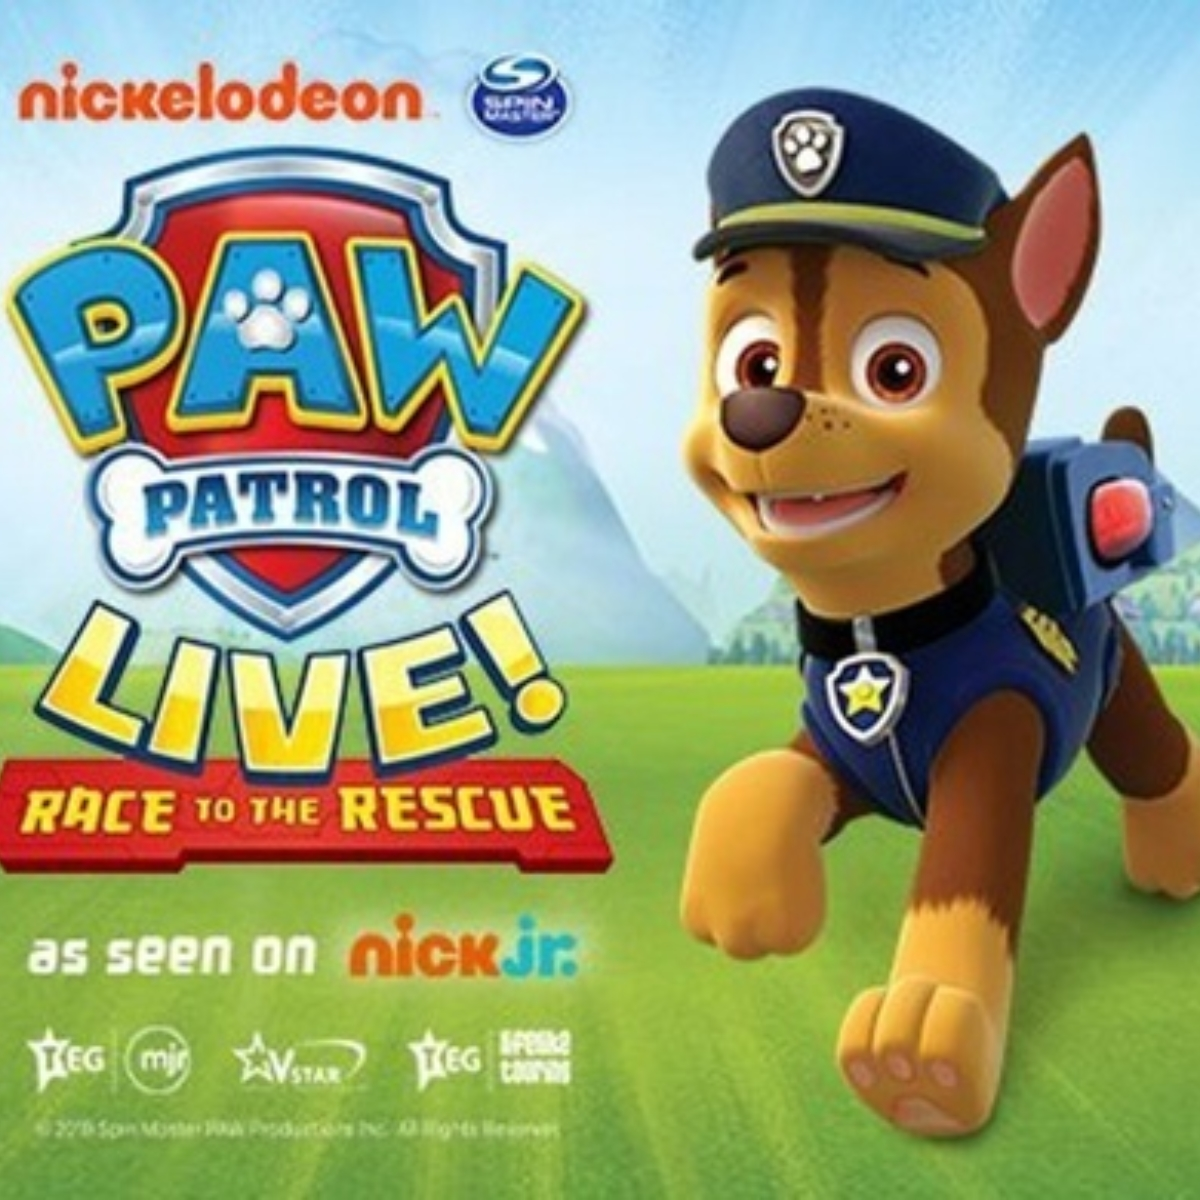 PAW PATROL LIVE! - Race to the Rescue (Aberdeen) Images